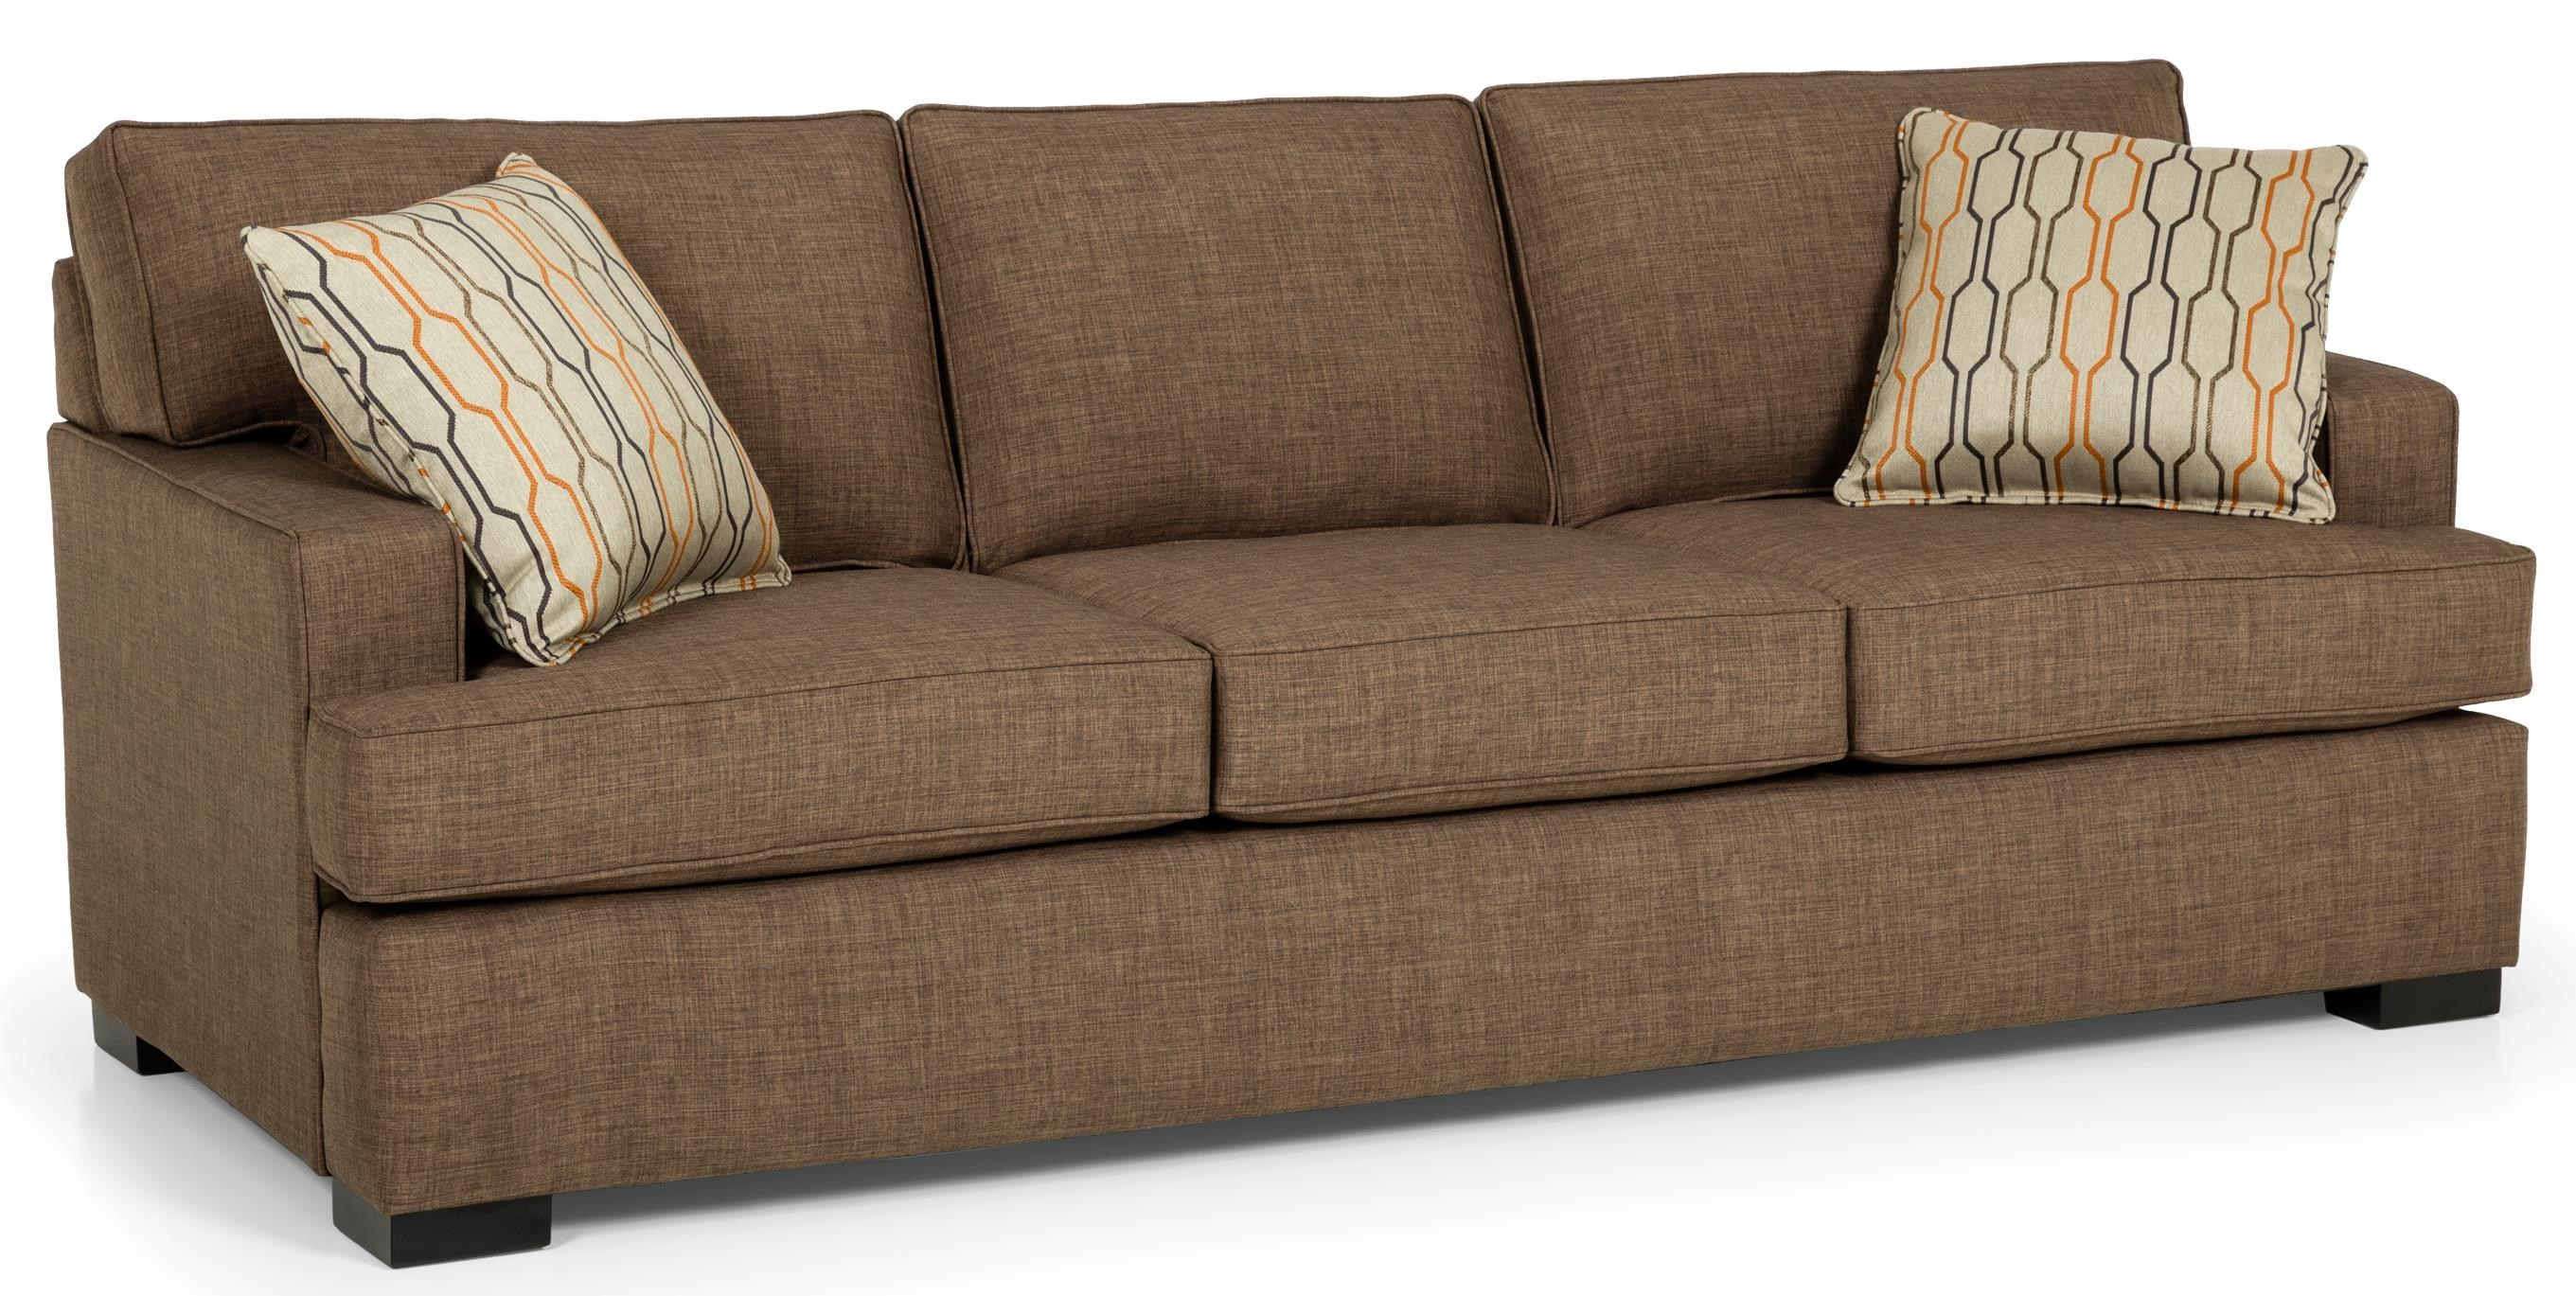 Sunset Home 146 Contemporary Gel Sleeper Sofa With Track